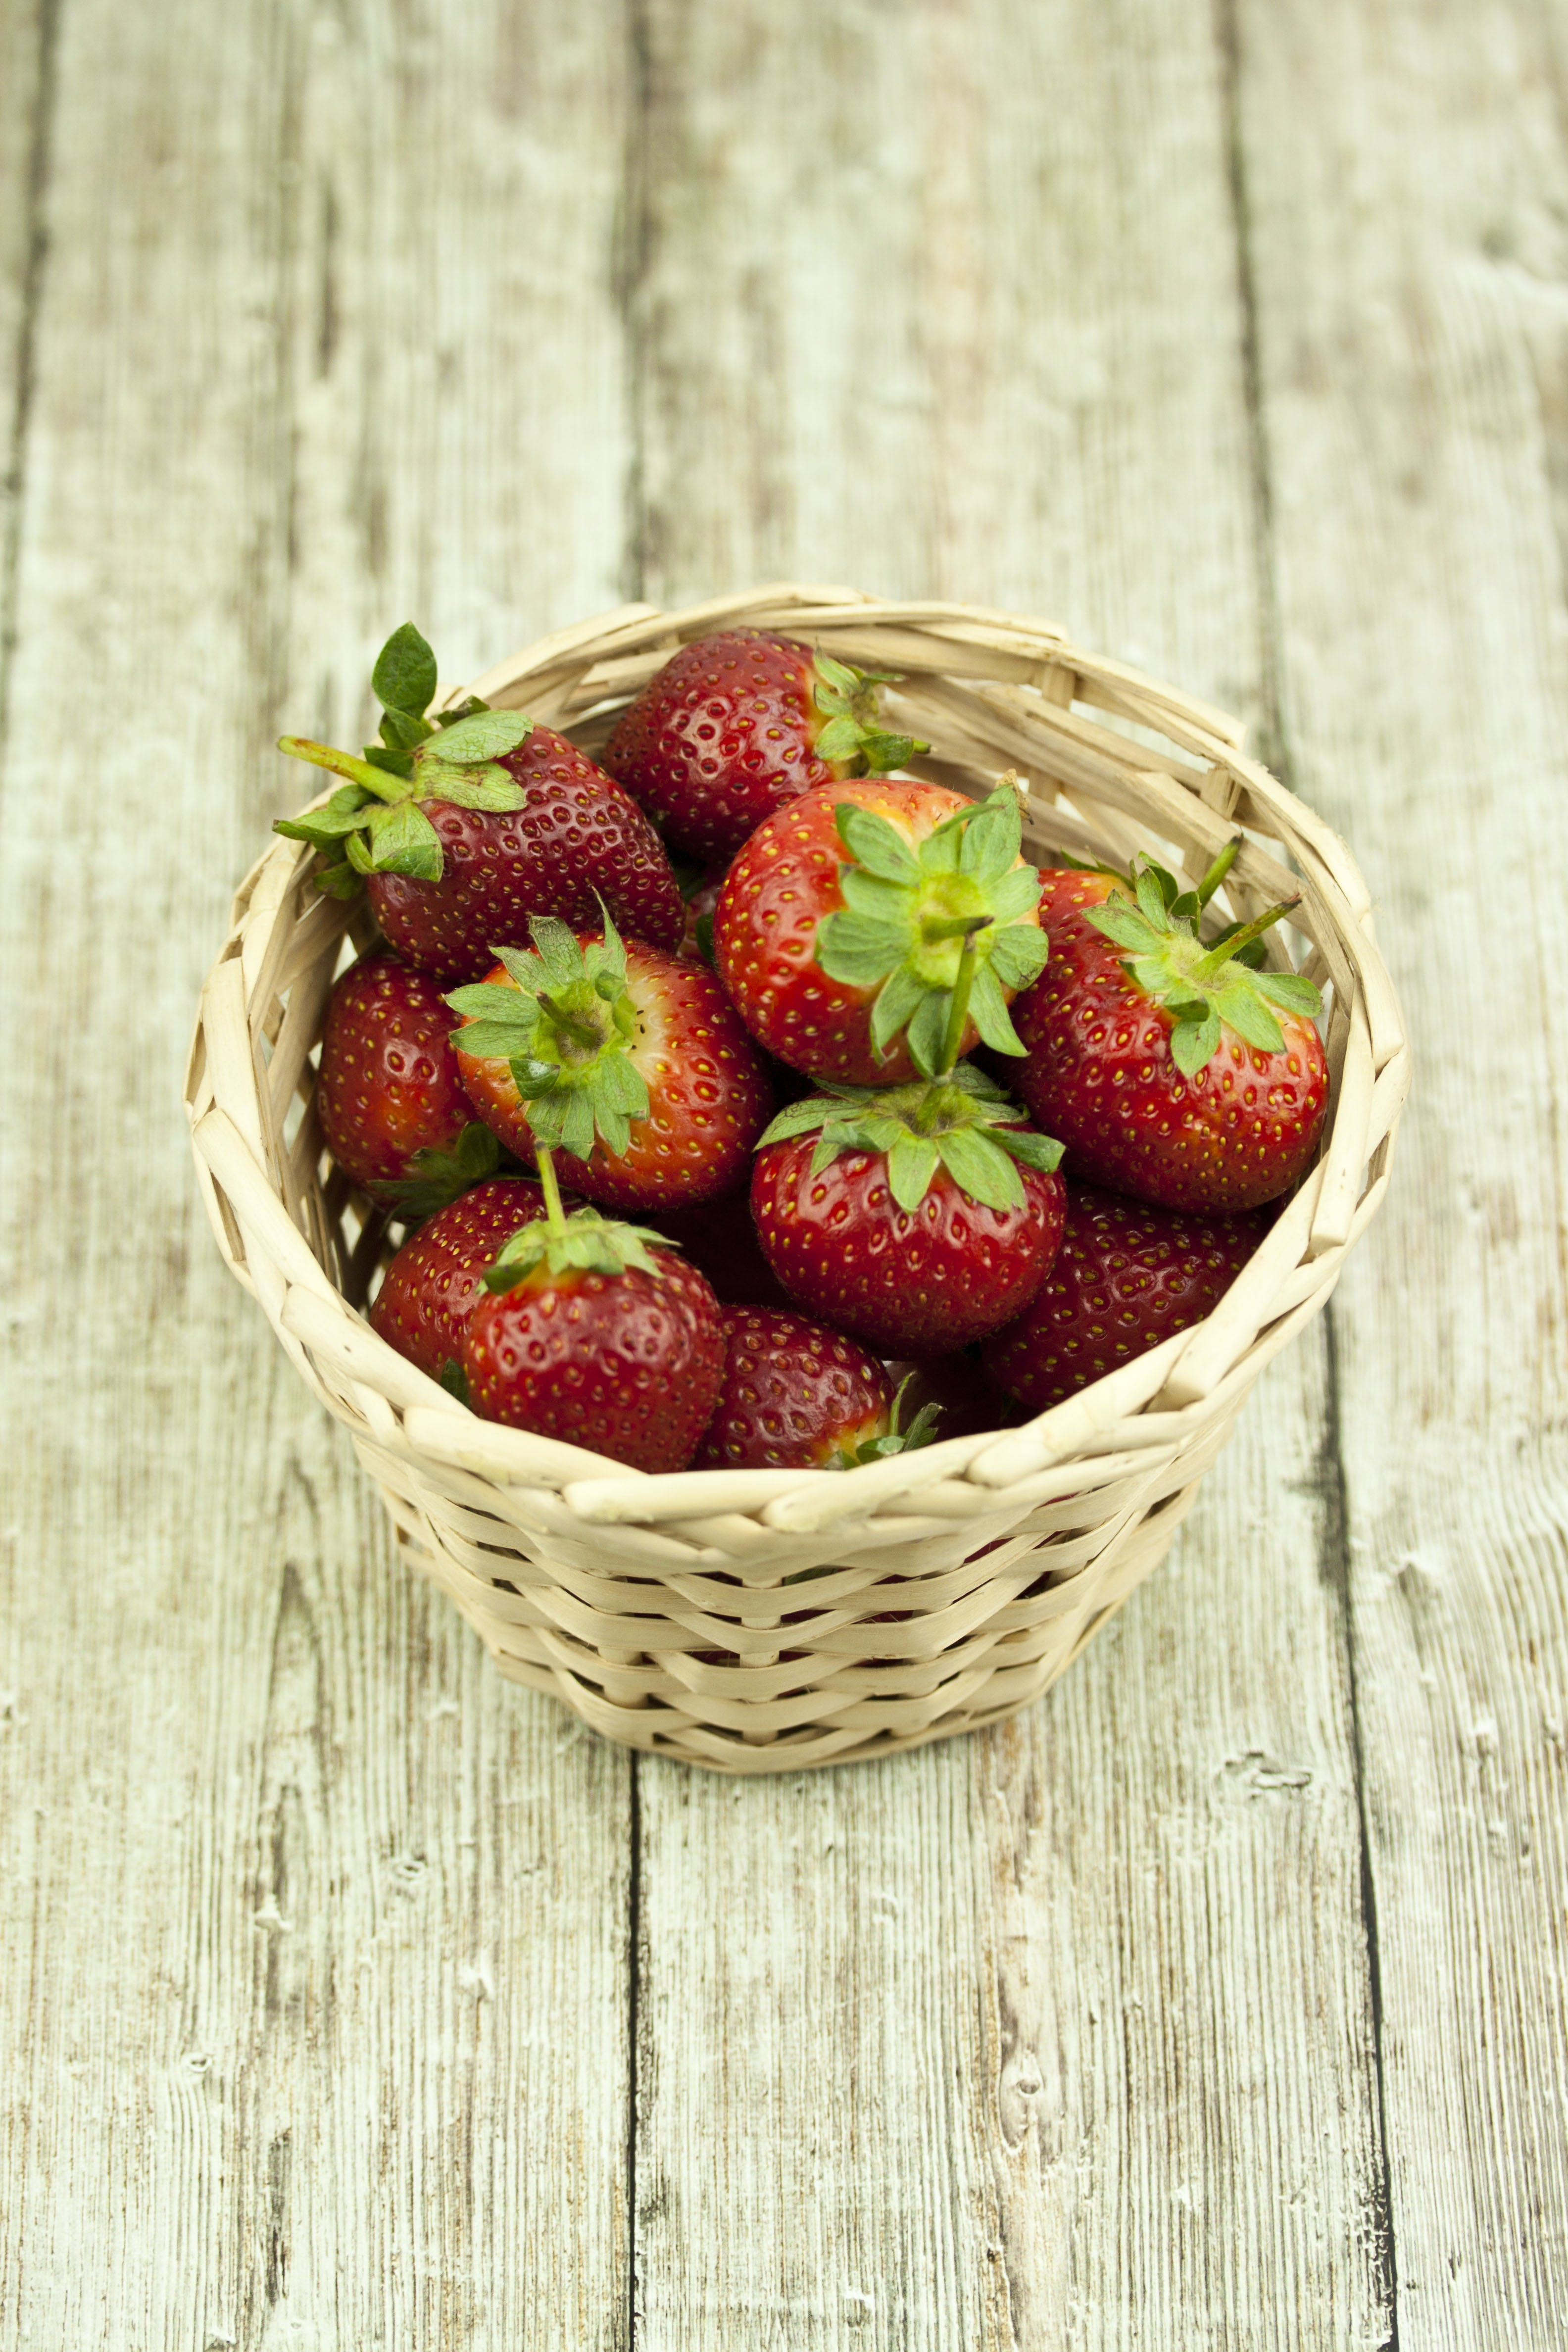 Free stock photo of food, fruits, nature, plants